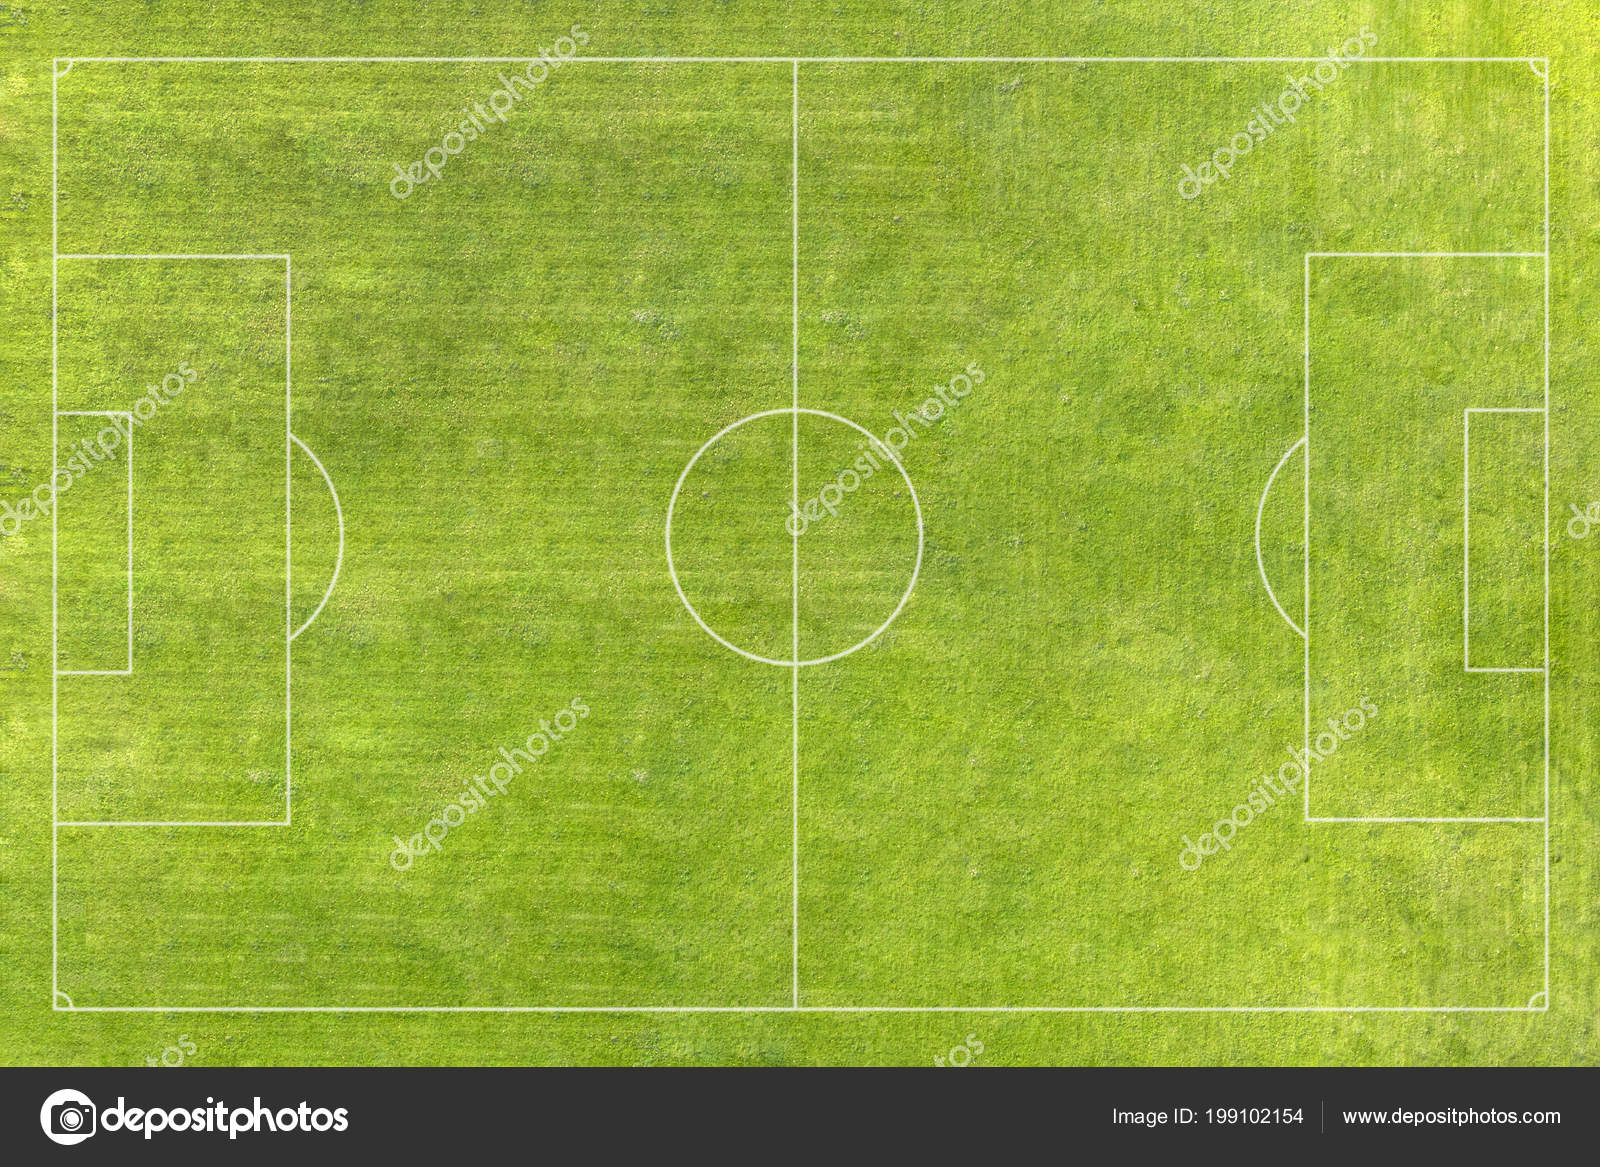 green grass football field high quality real soccer field football field green grass green striped lawn white markings on the grass photo by diy13yaru real soccer field football grass striped lawn